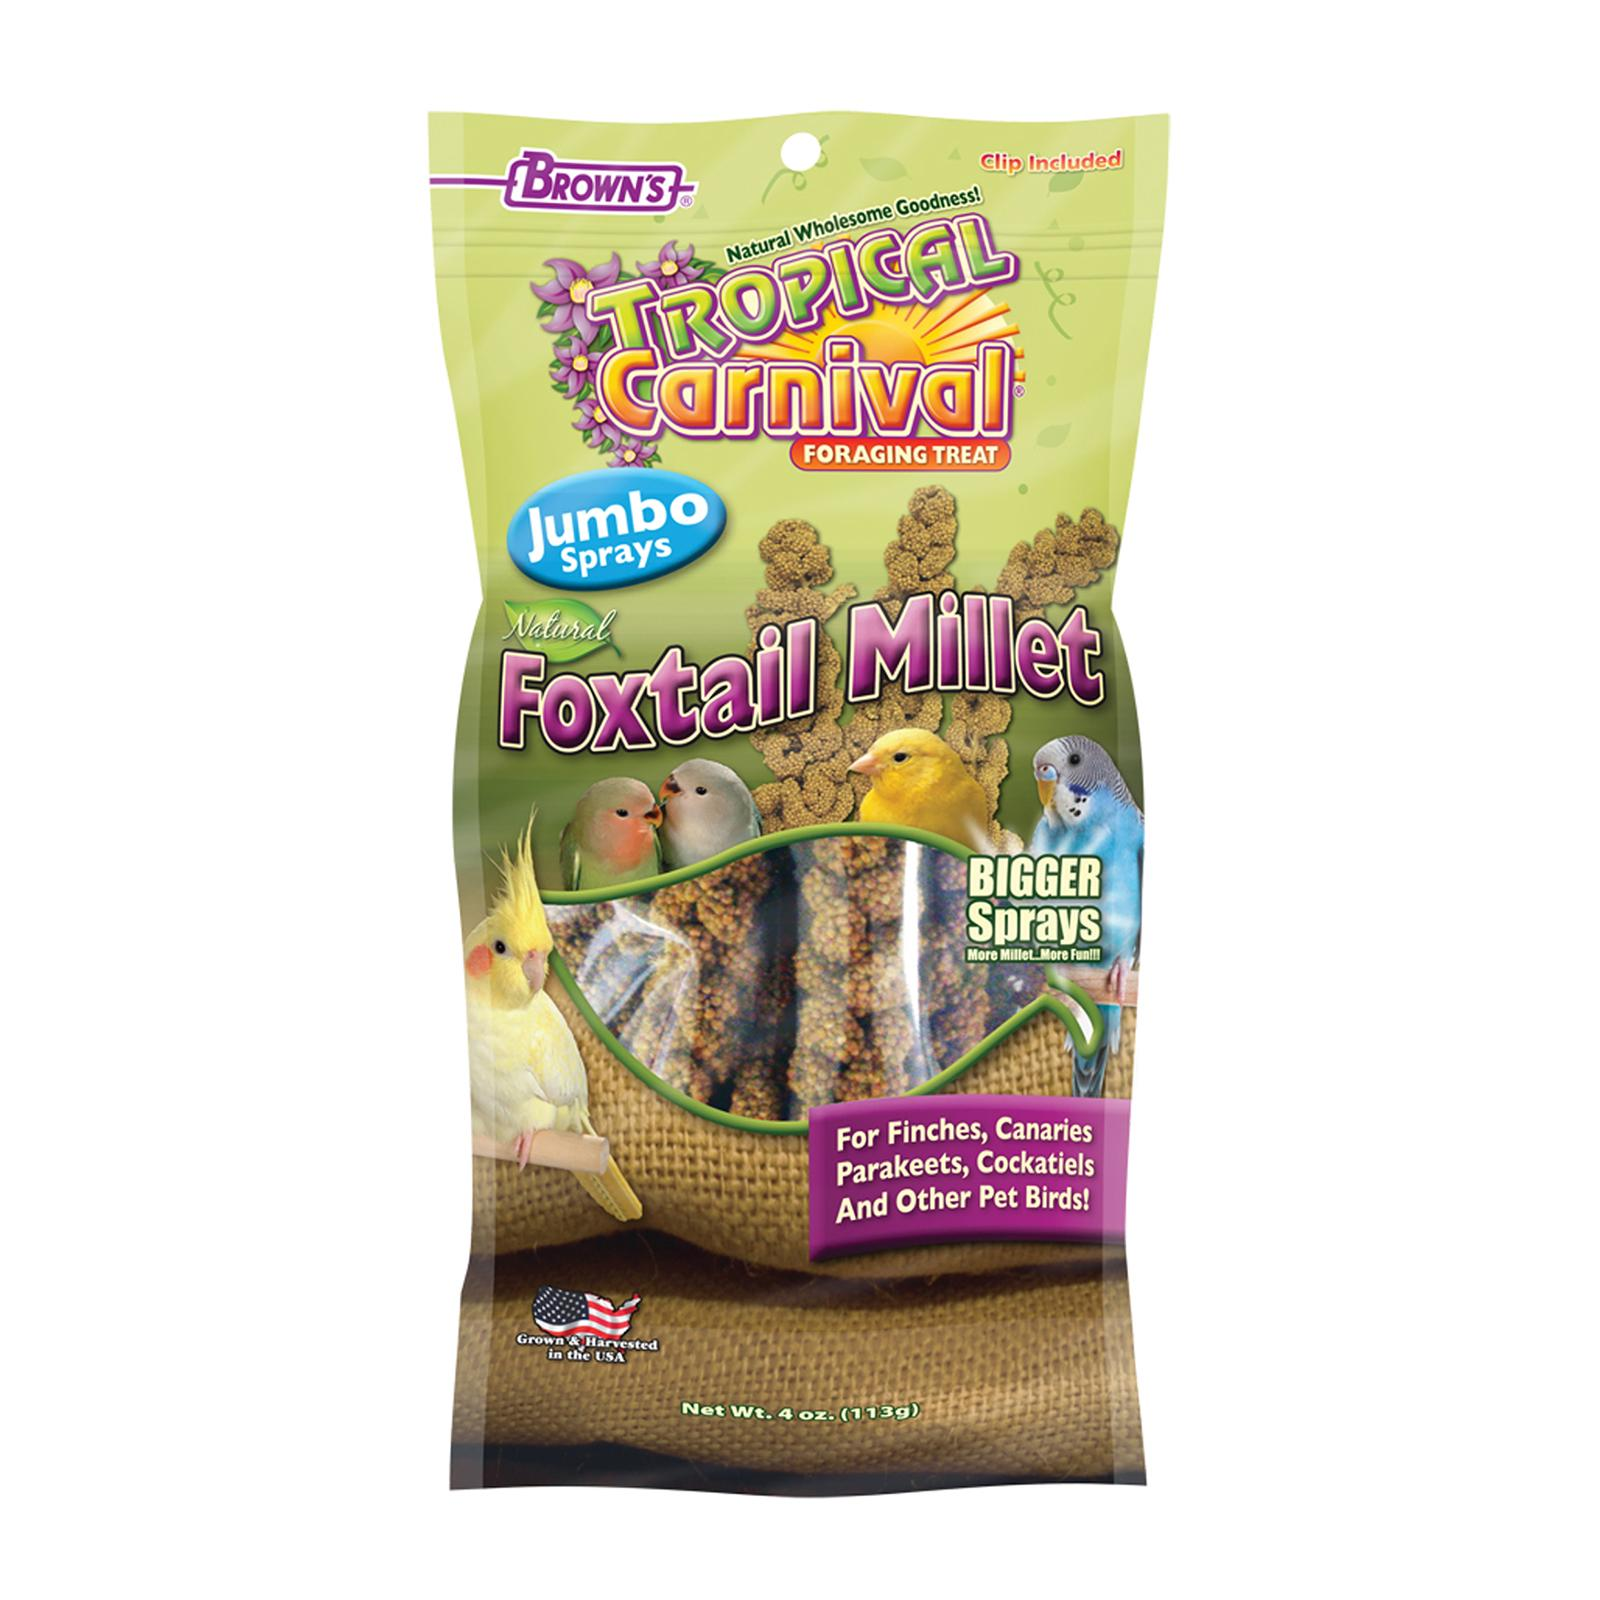 Brown's Tropical Carnival Natural Foxtail Millet Jumbo Sprays 4OZ